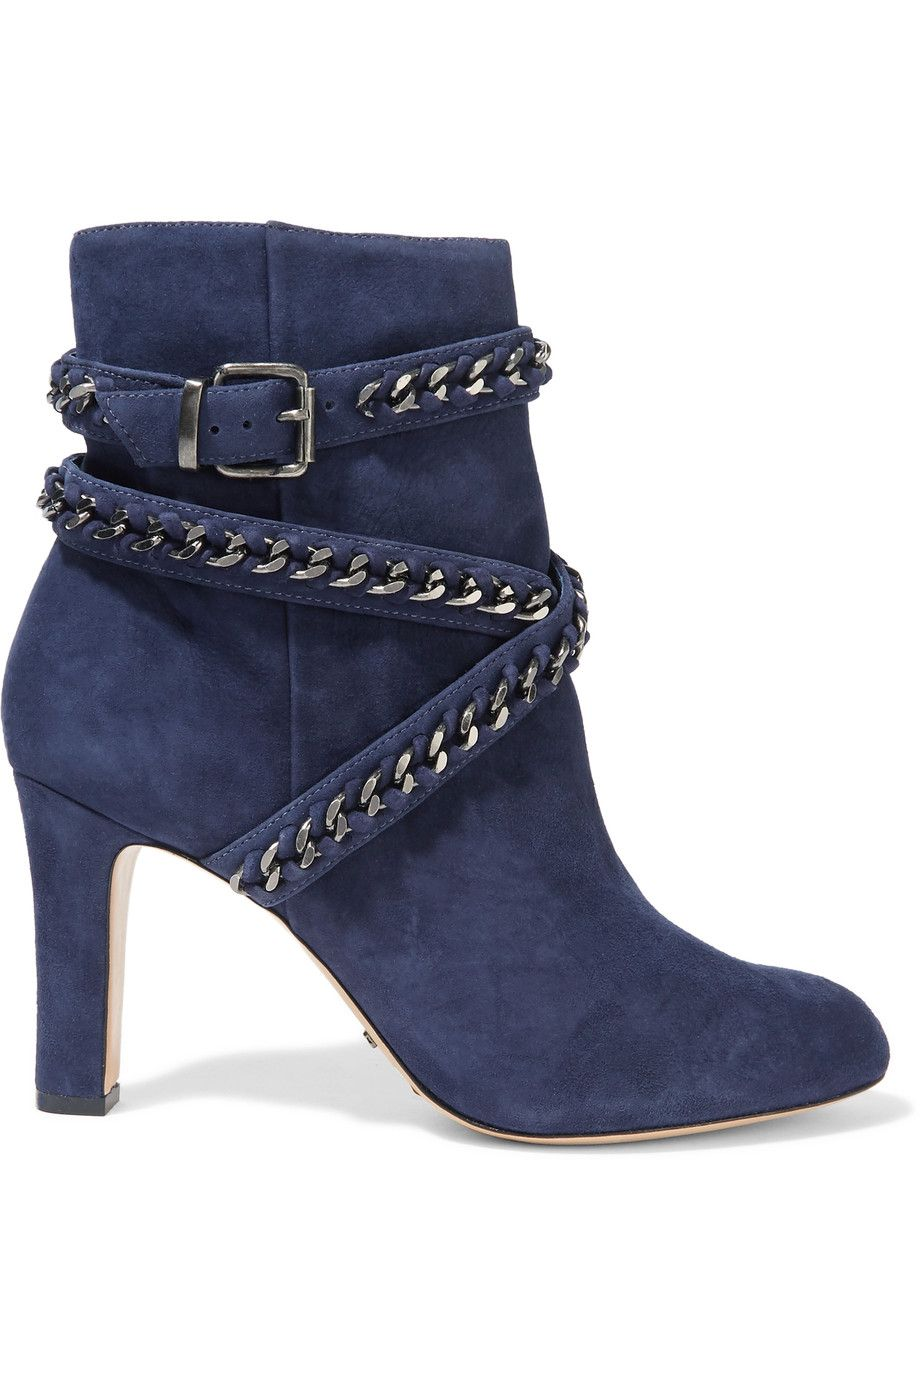 Shop on-sale Schutz Chain-embellished suede ankle boots. Browse ...